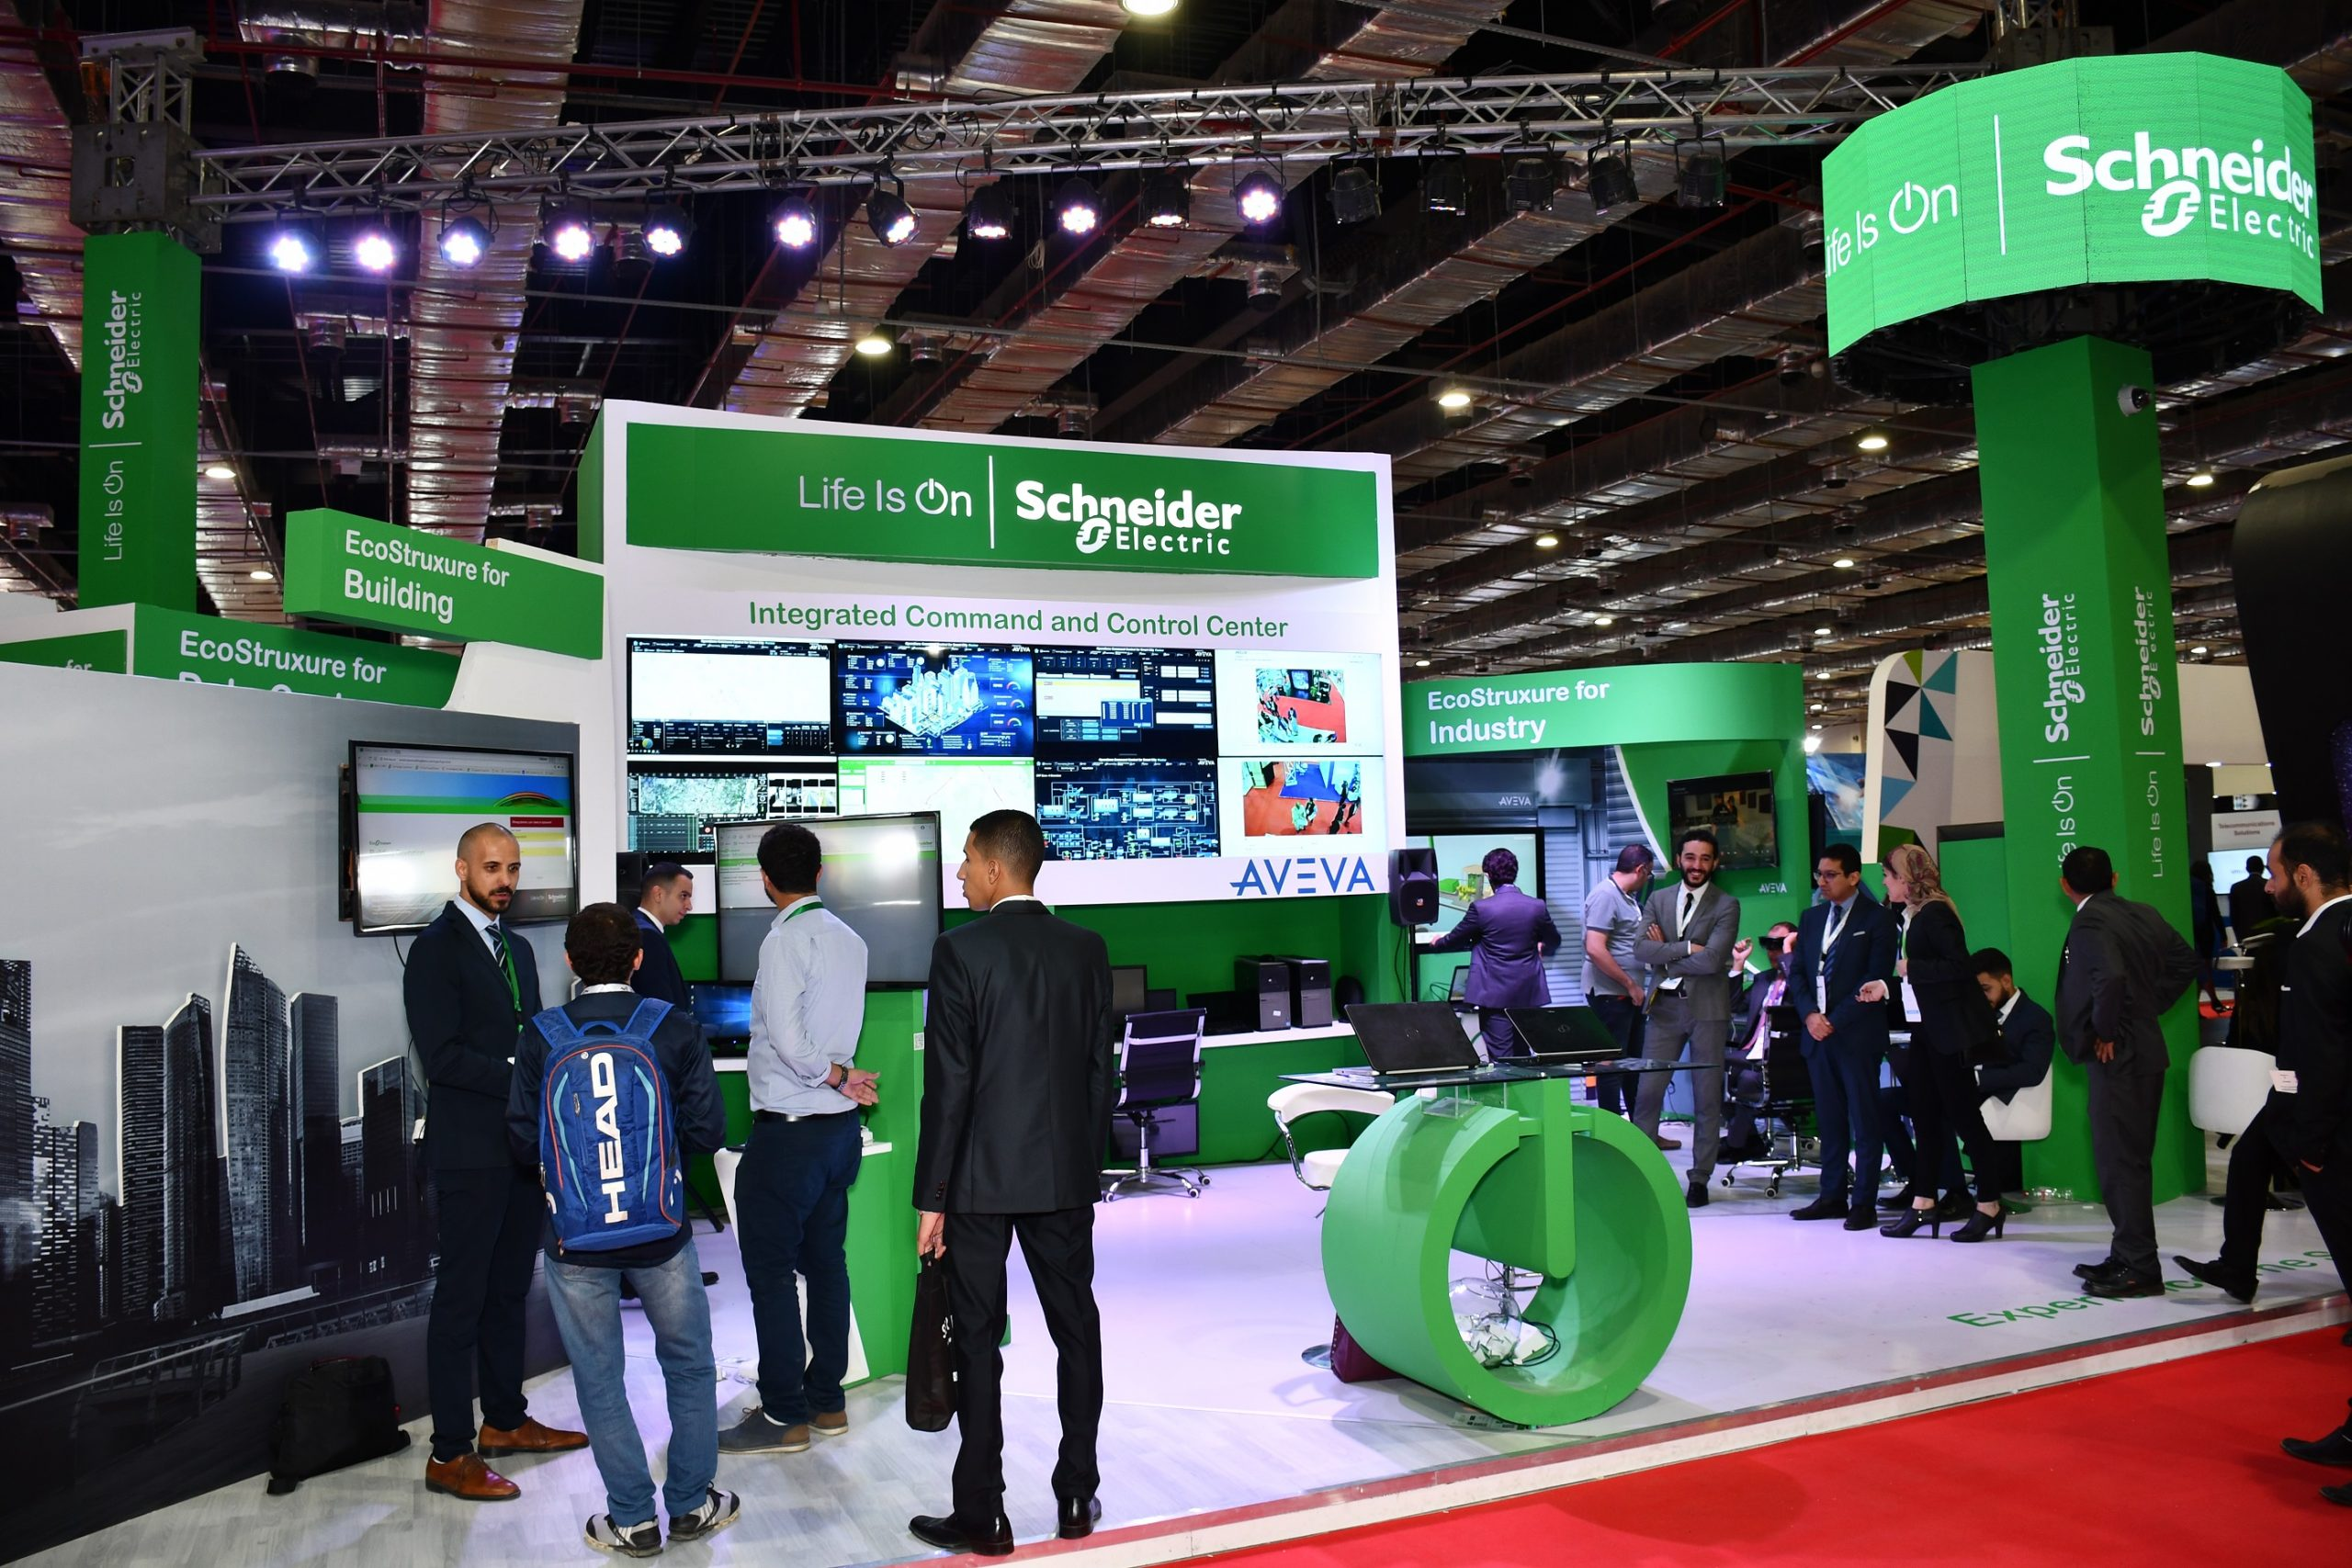 Schneider Electric showcases the latest smart city technologies at Cairo ICT 2018